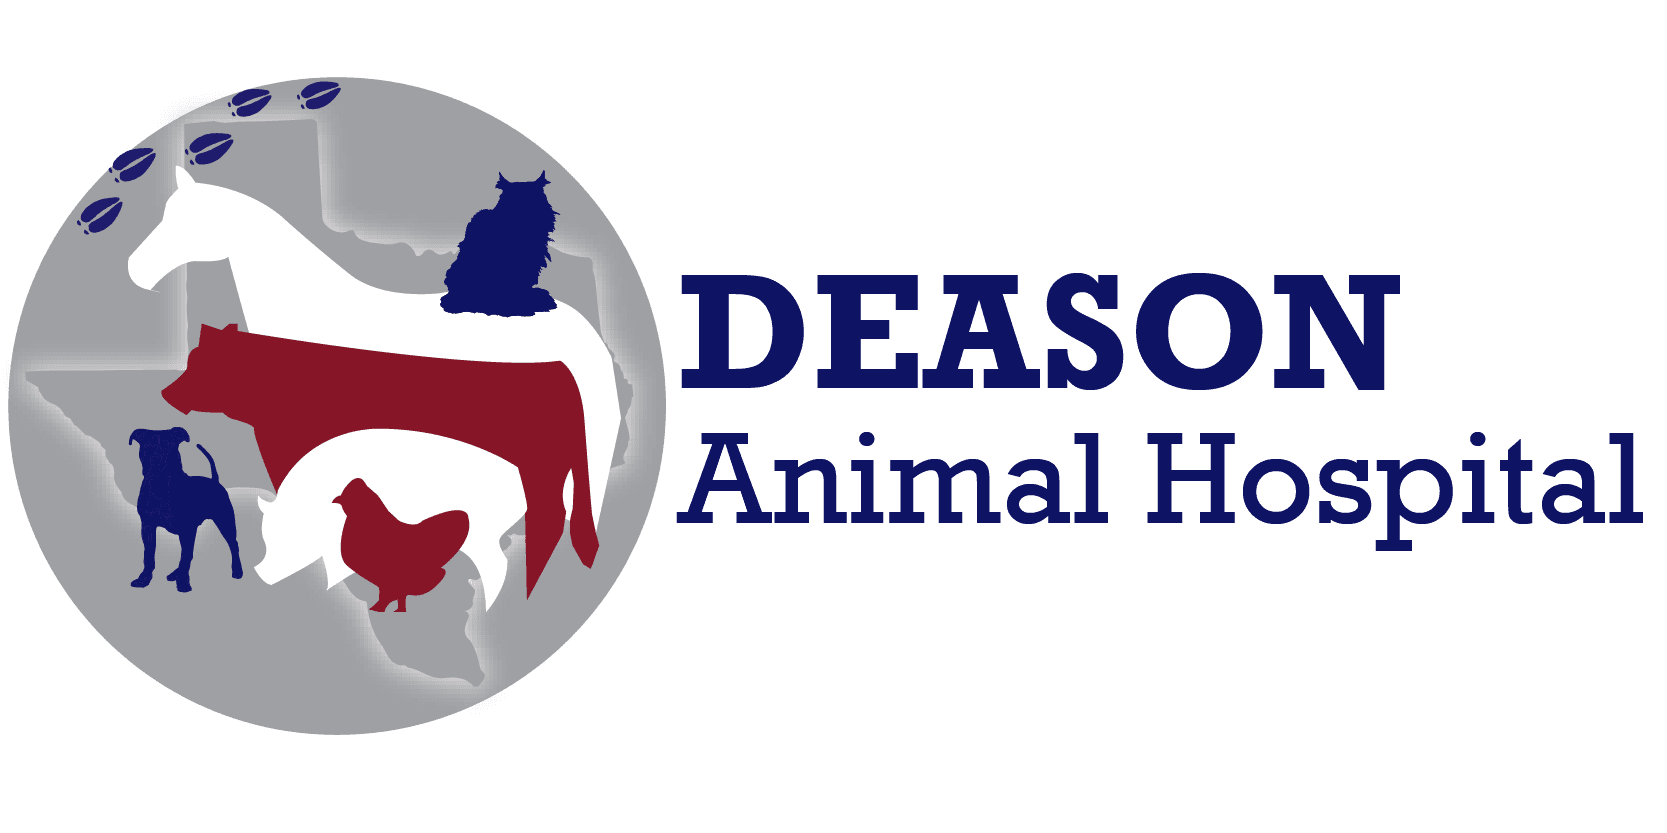 Pocket pet veterinarian serving Floresville Texas, Stockdale, Pleasanton and Wilson County Texas